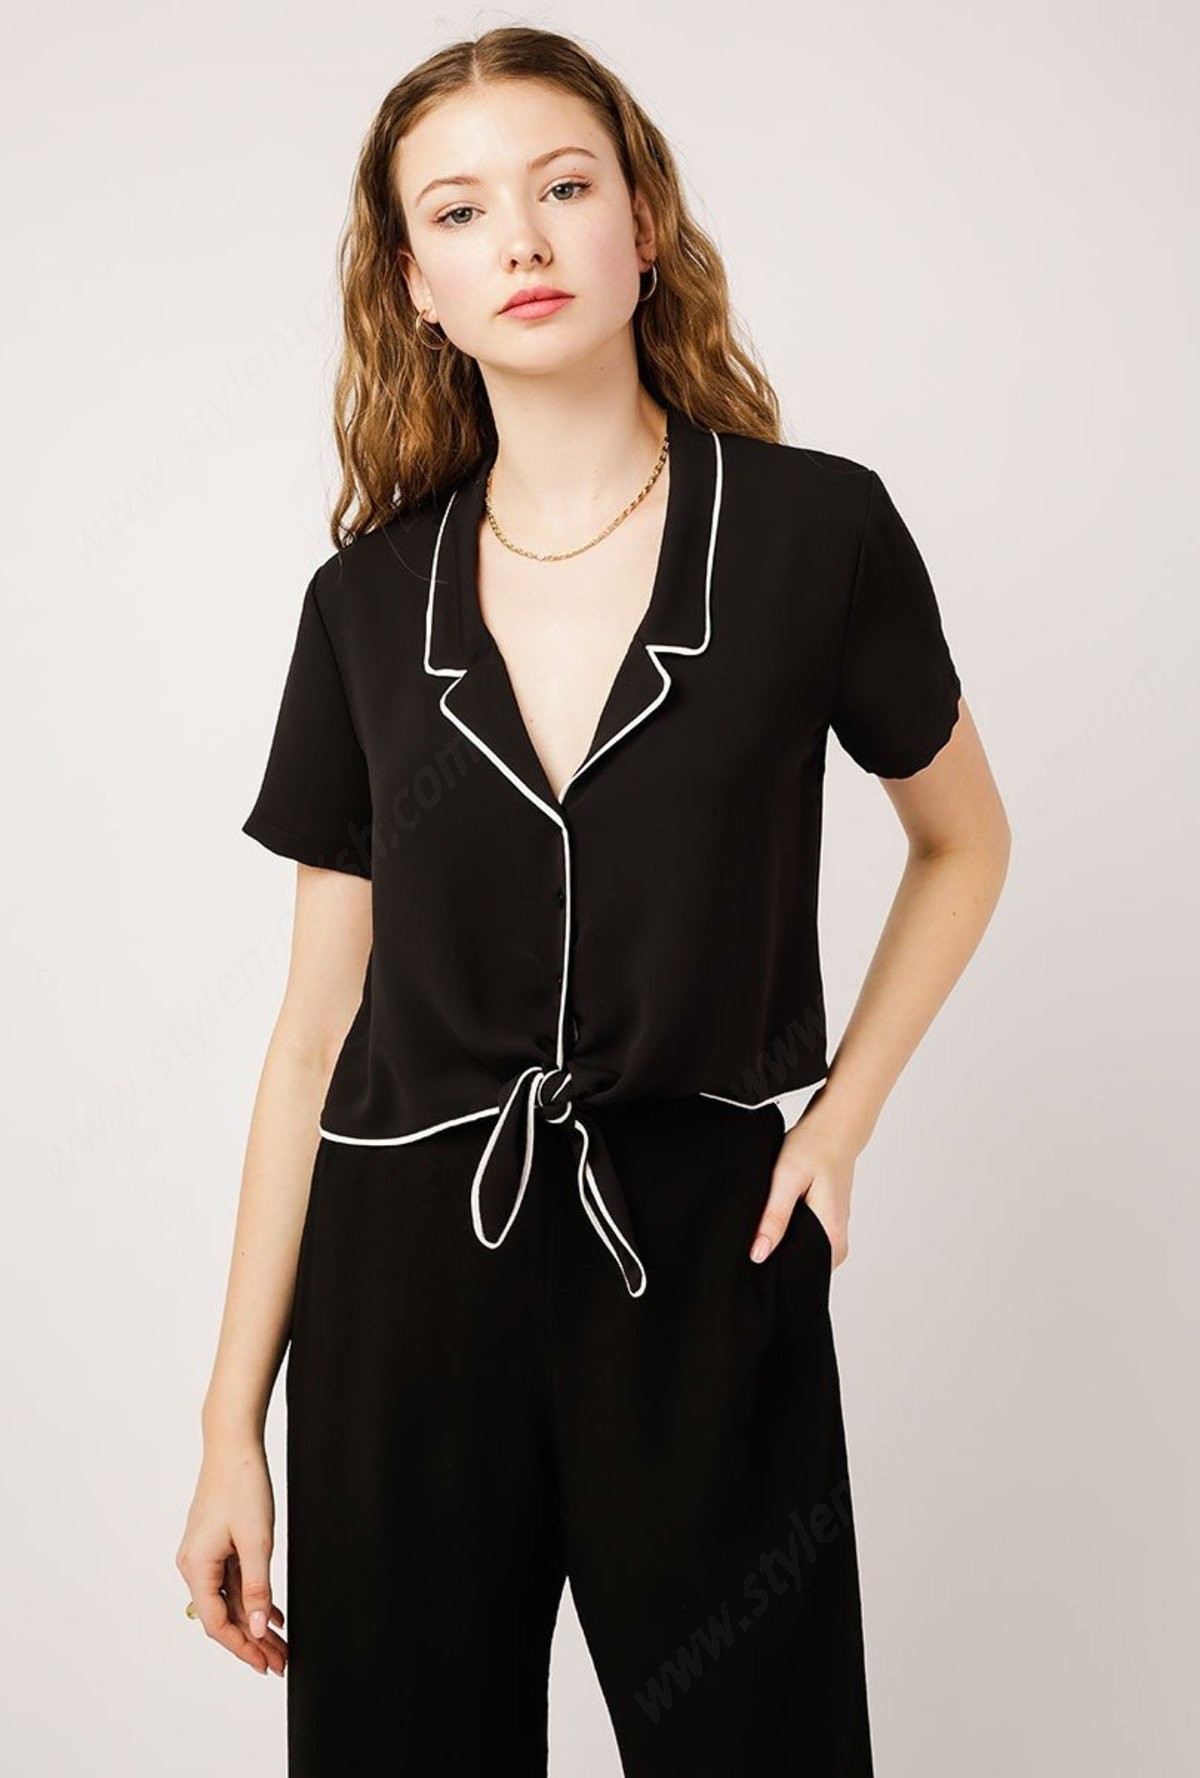 Woman's Azalea Chords Collared Tie Front Top - Black/off White - -0